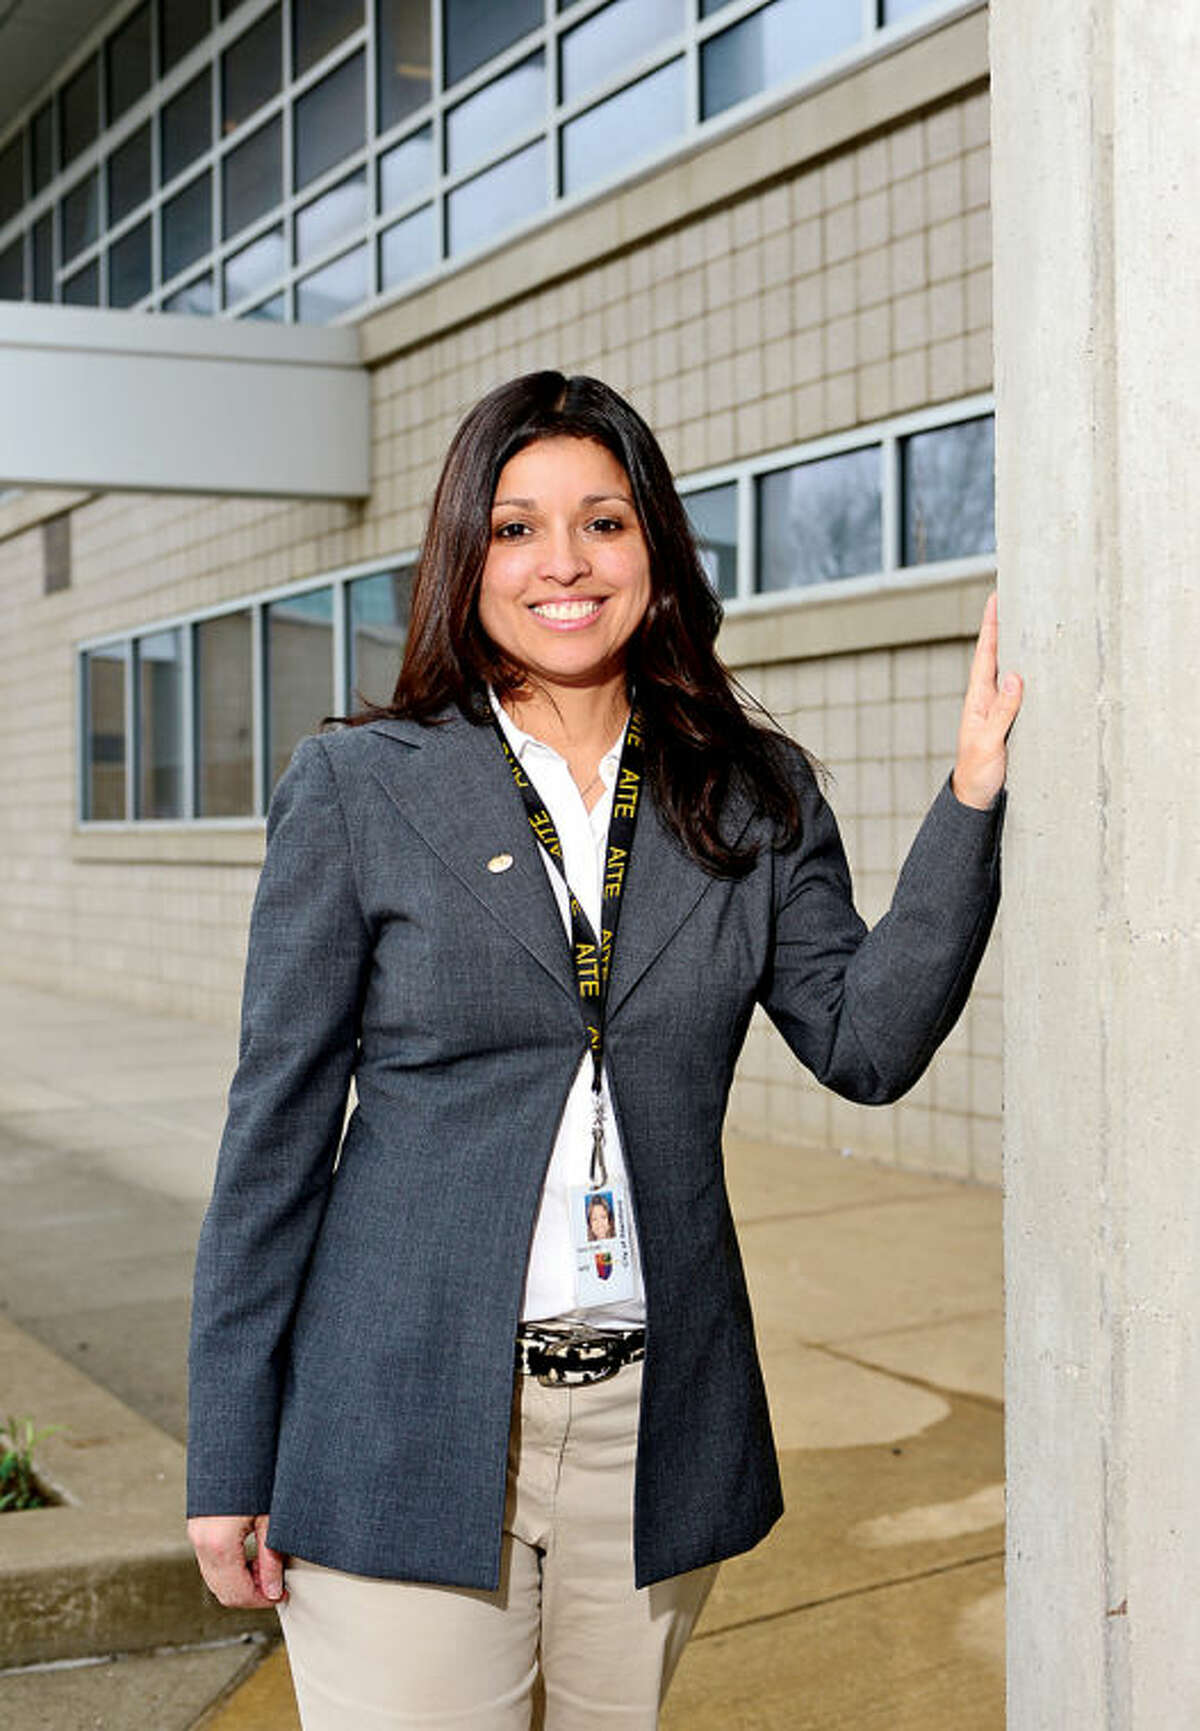 Tina Rivera was appointed as principal of the Academy of Information Technology and Engineering (AITE). Rivera is currently interim principal and will become principal on July 1.